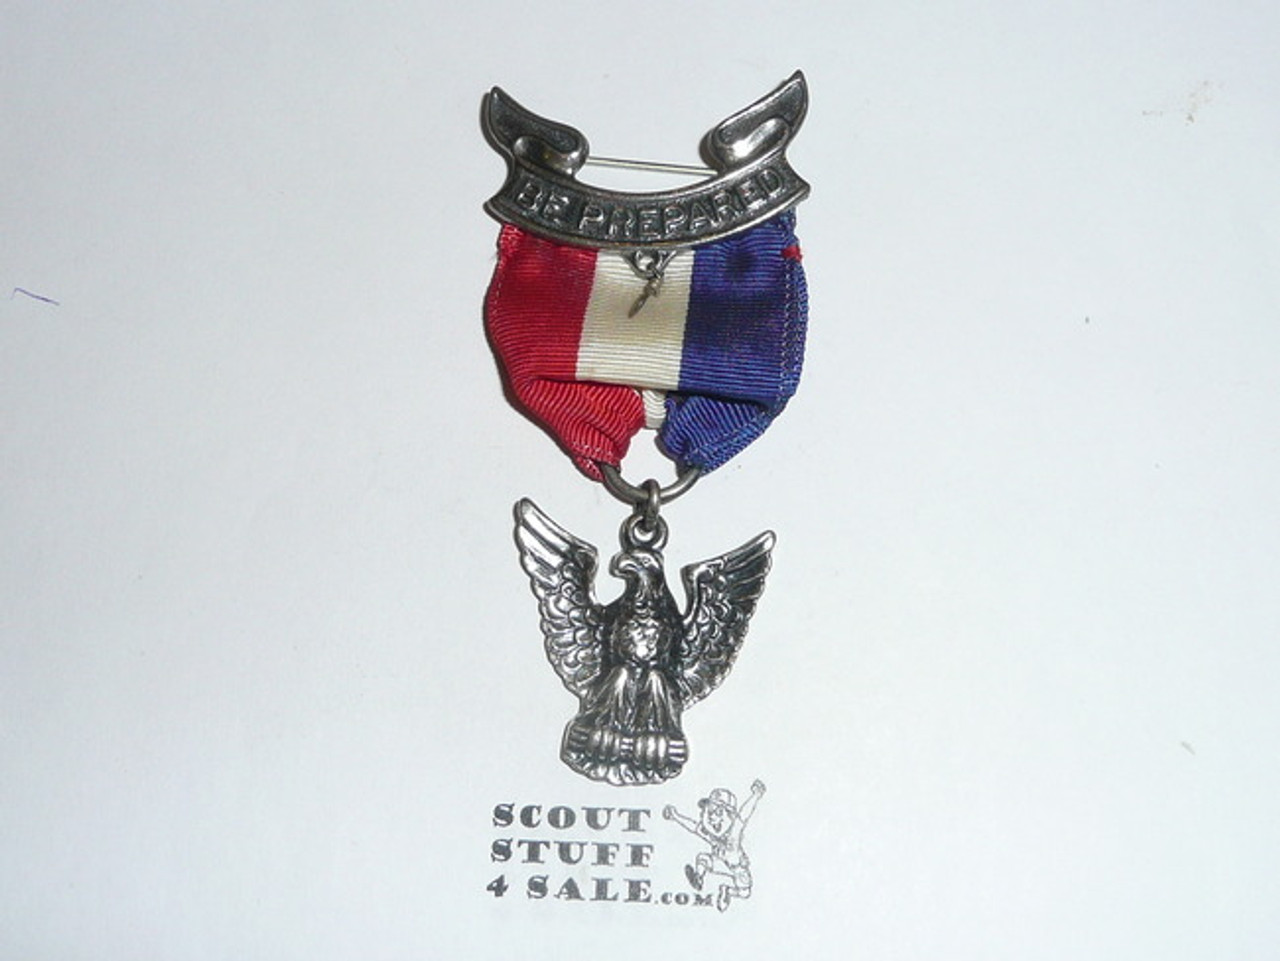 Eagle Scout Medal, Robbins 4, 1955-1969, Flat Back Style, STERLING SILVER, Mint Unused Condition, may have lite tarnish on the back of pendant which is normal